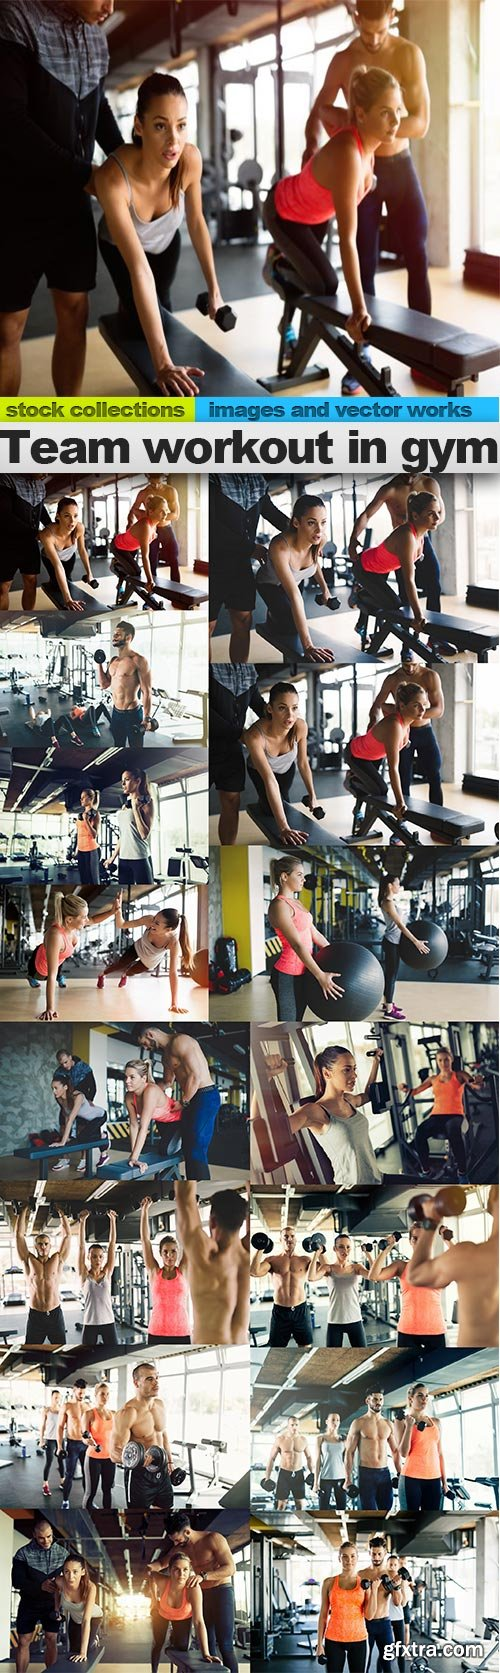 Team workout in gym, 15 x UHQ JPEG